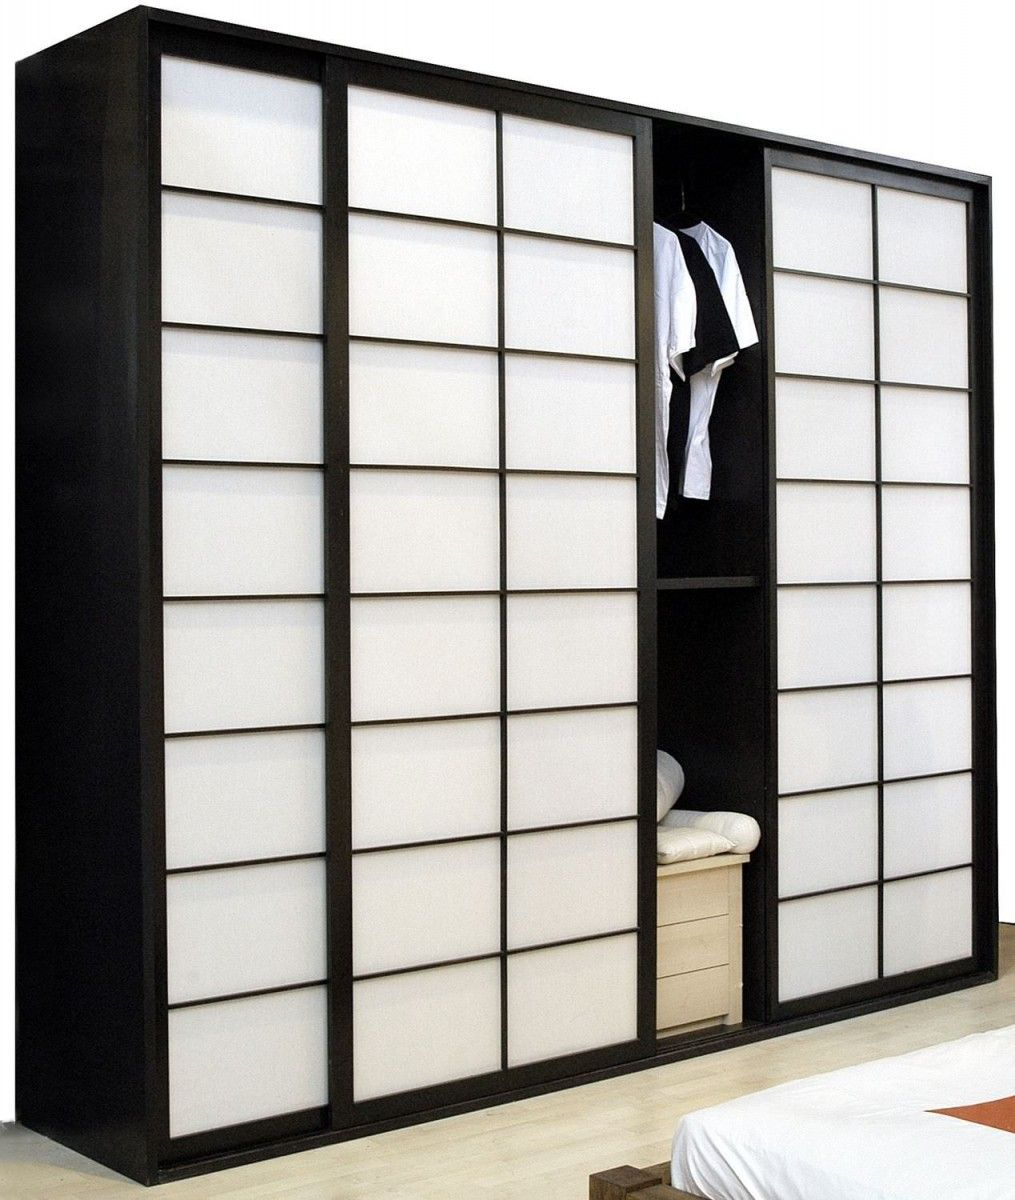 A Japanese Inspired Apartment With Plenty Storage Systems: Japanese Shoji Screens For Sliding Glass Doors